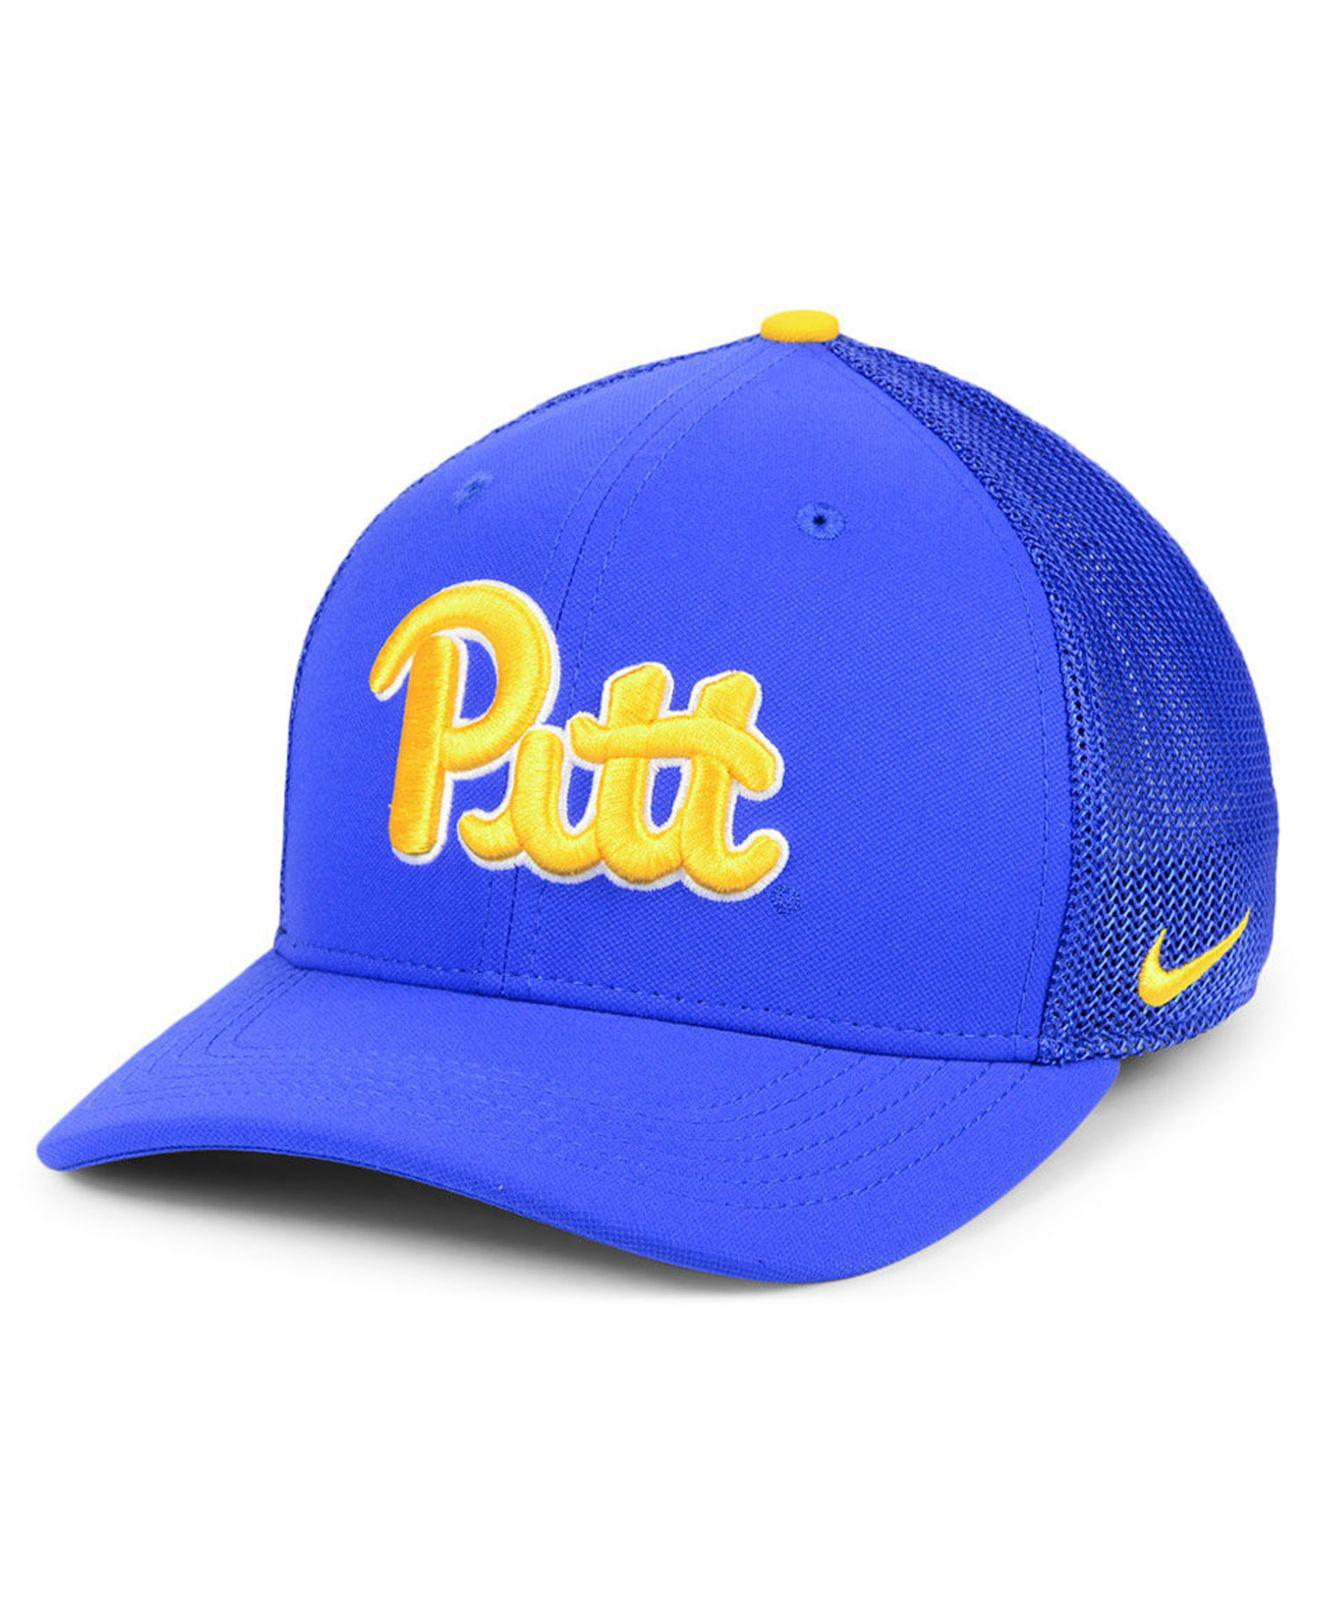 the best attitude f474e d07f7 ... ireland lyst nike pittsburgh panthers col aro swooshflex cap in blue  for men 0d469 21088